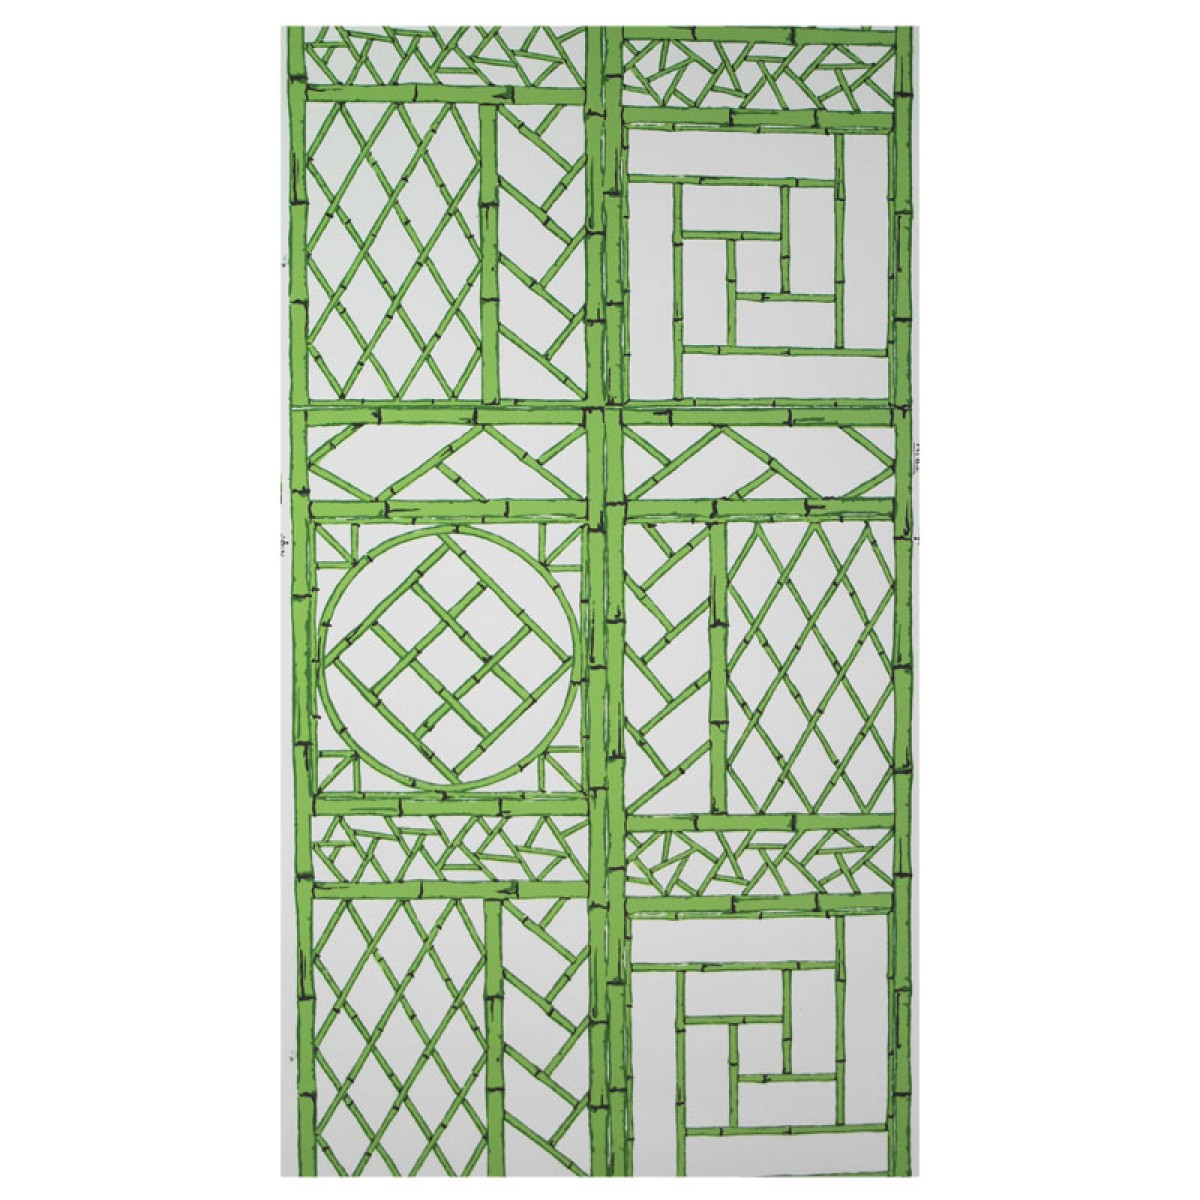 Green Chinese Lattice Wallpaper Set of 2 Rolls 1200x1200